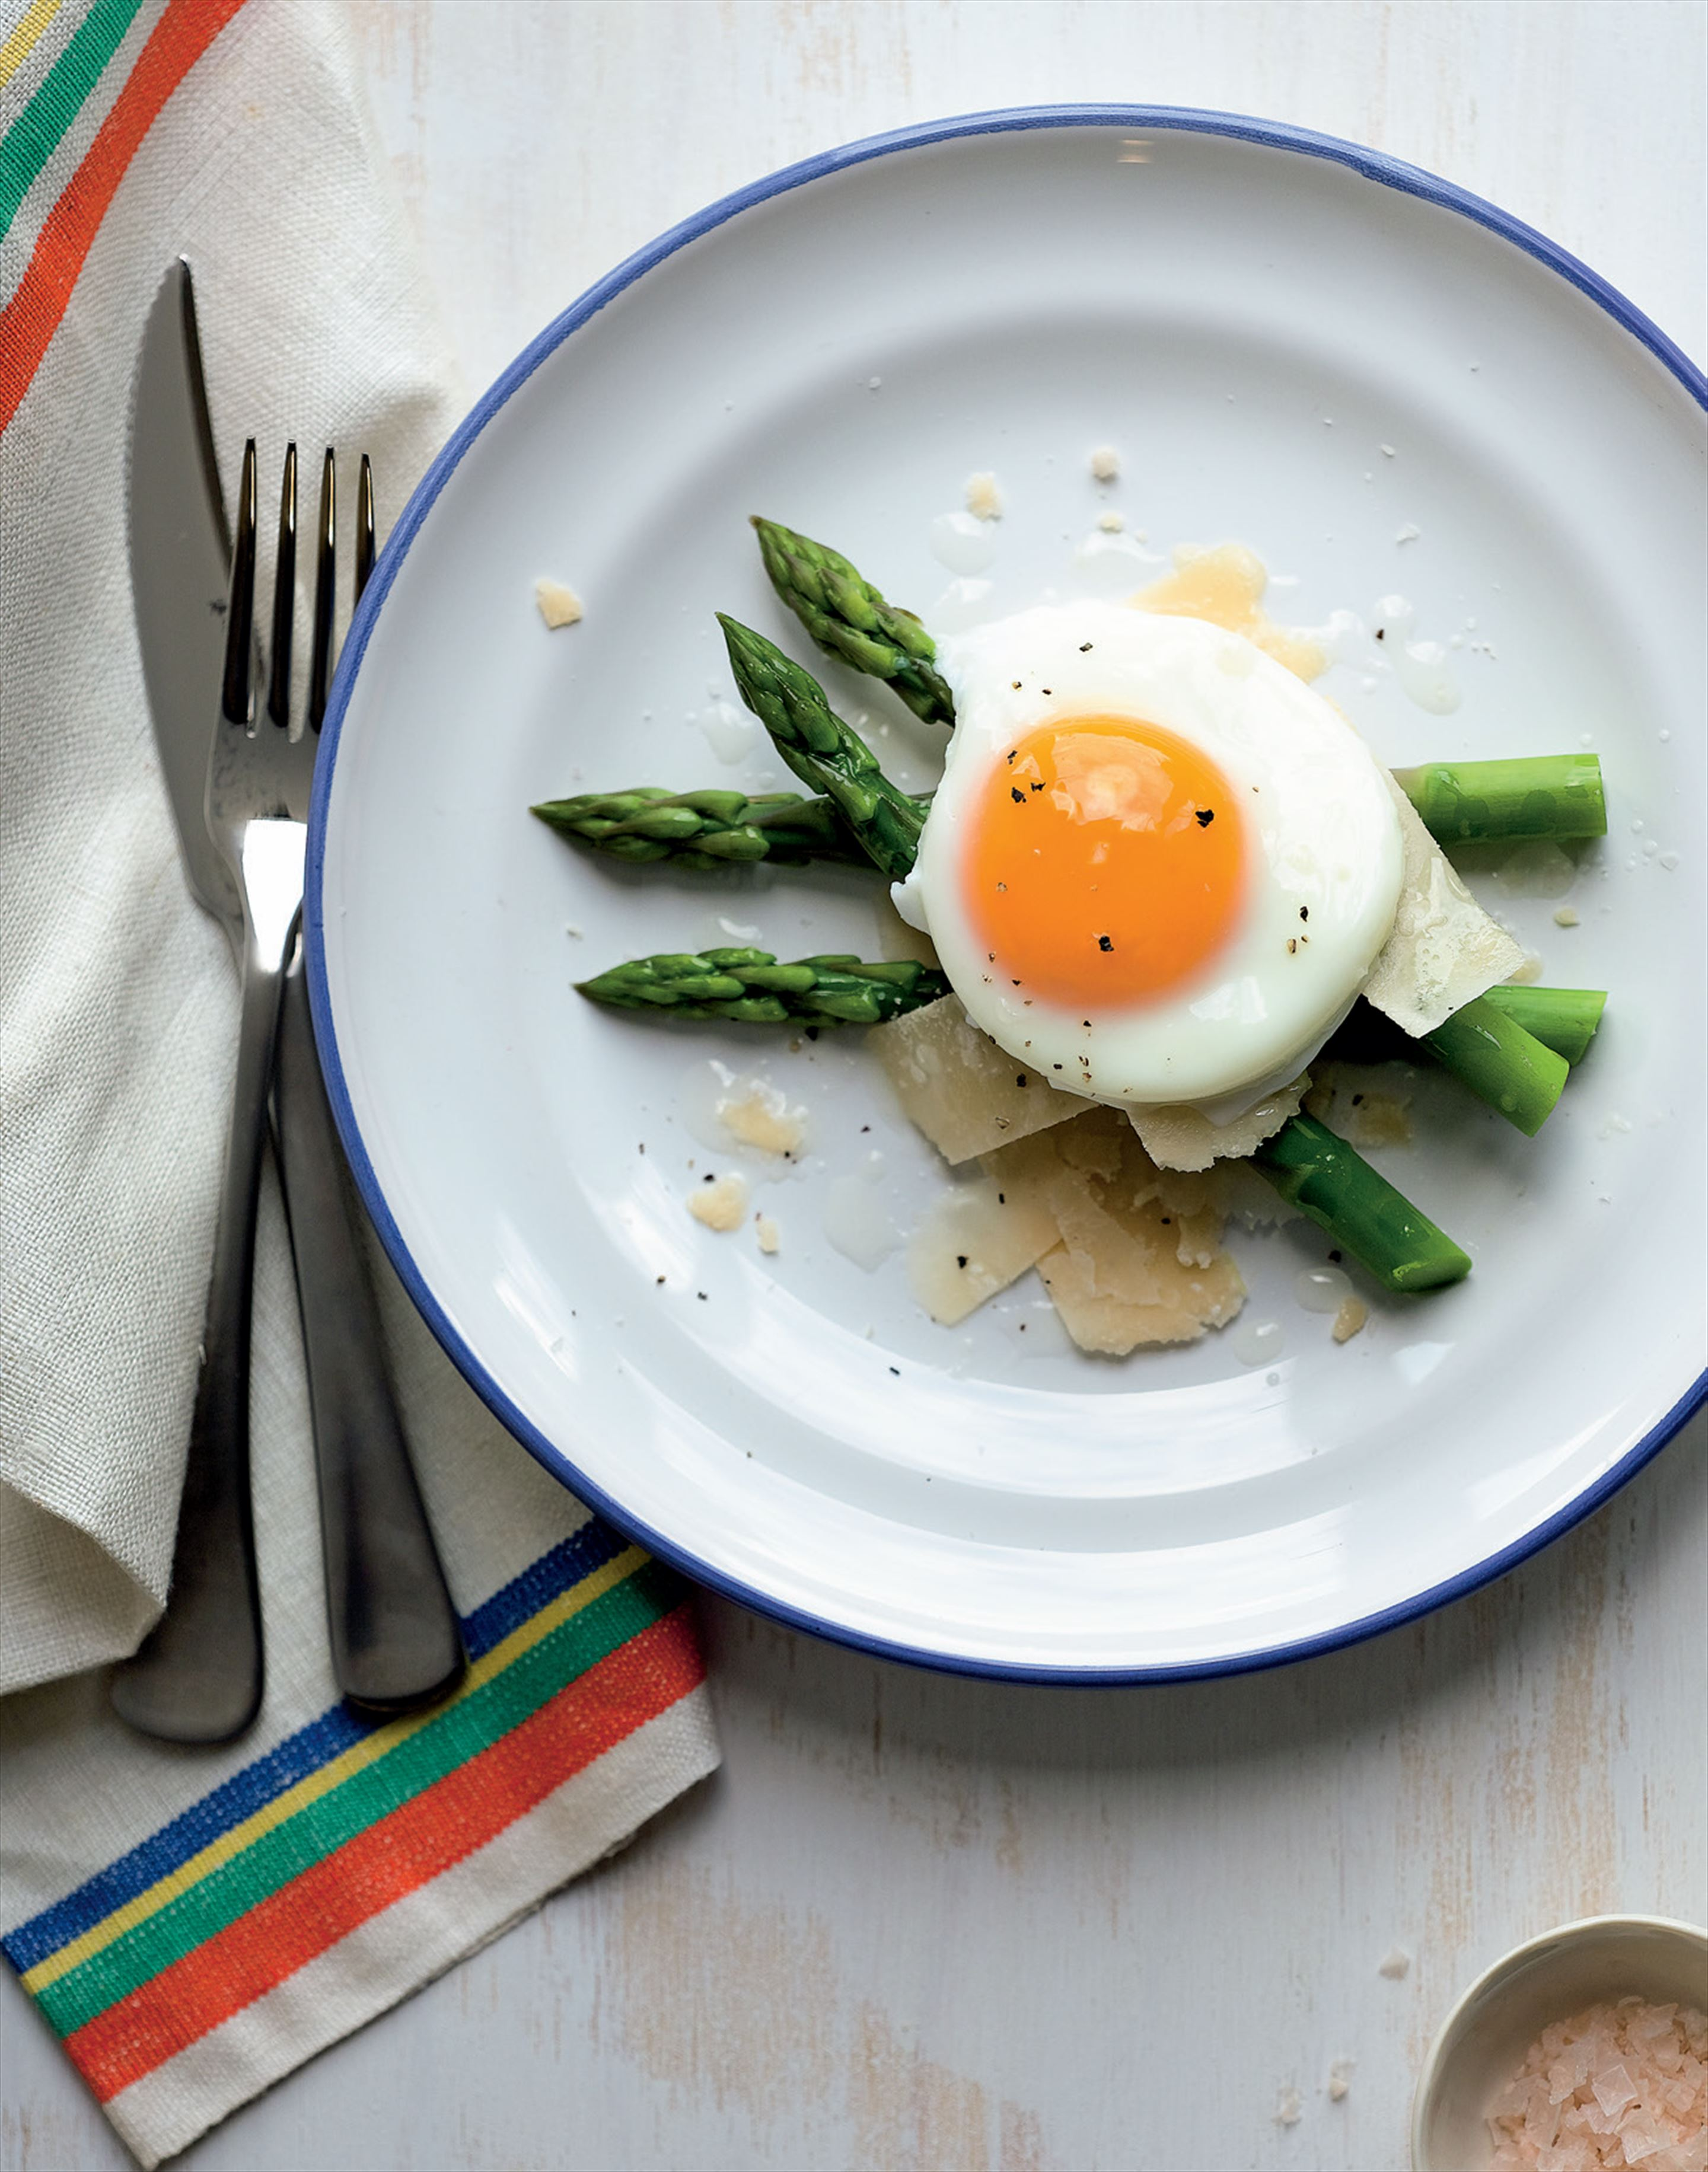 Asparagus with poached egg and parmesan